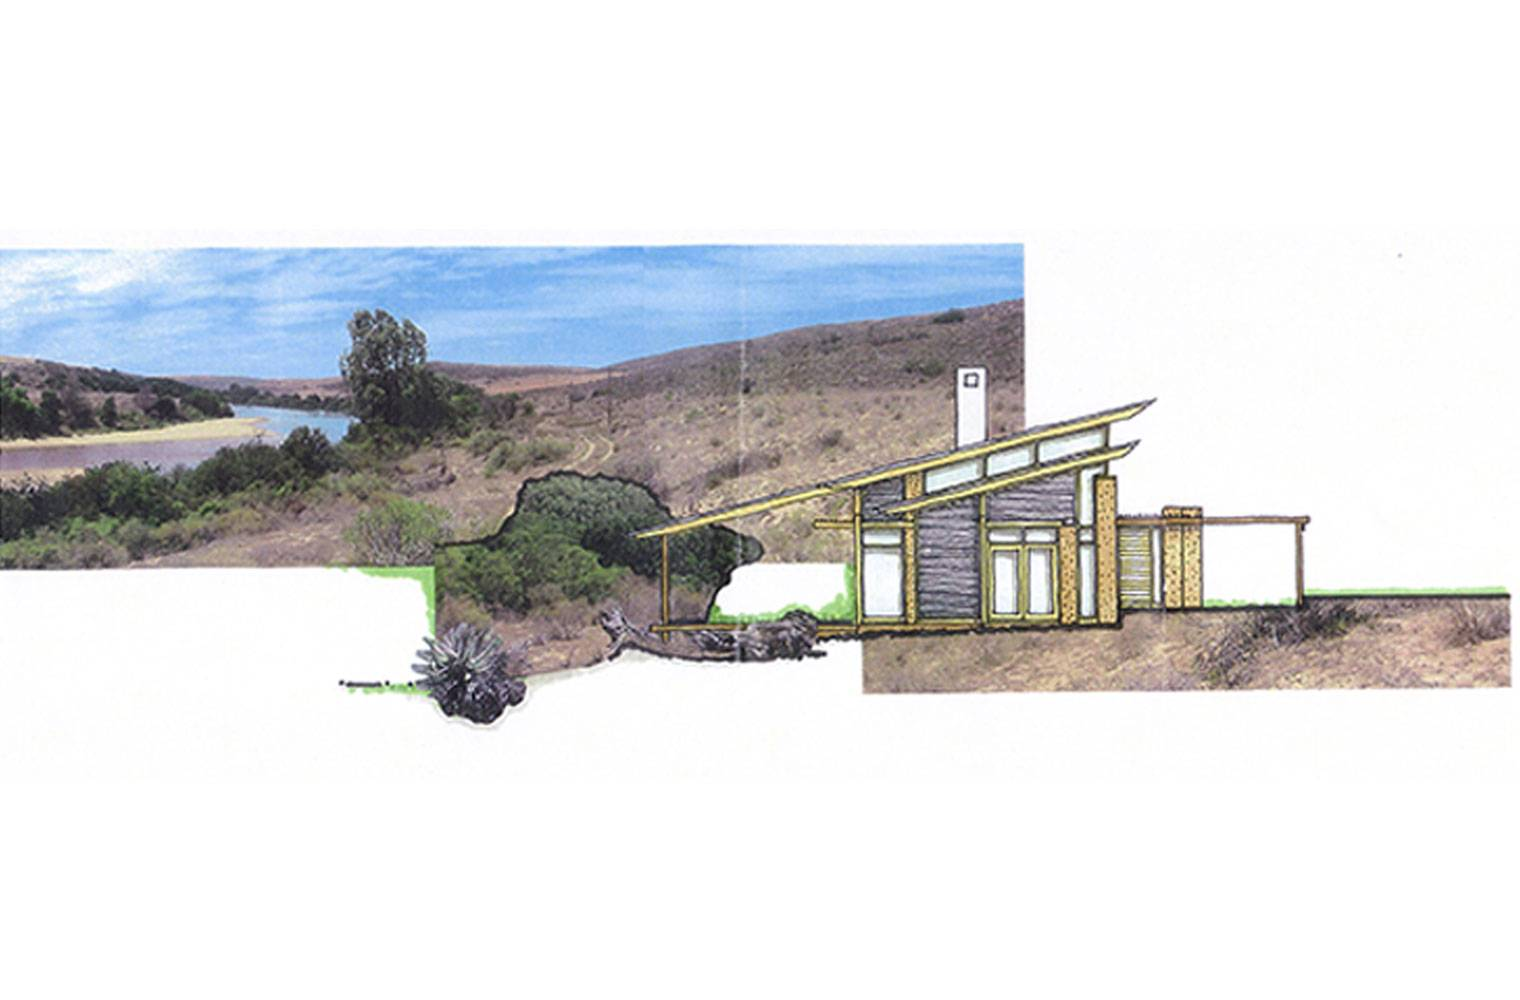 Breede River - Concept Elevation